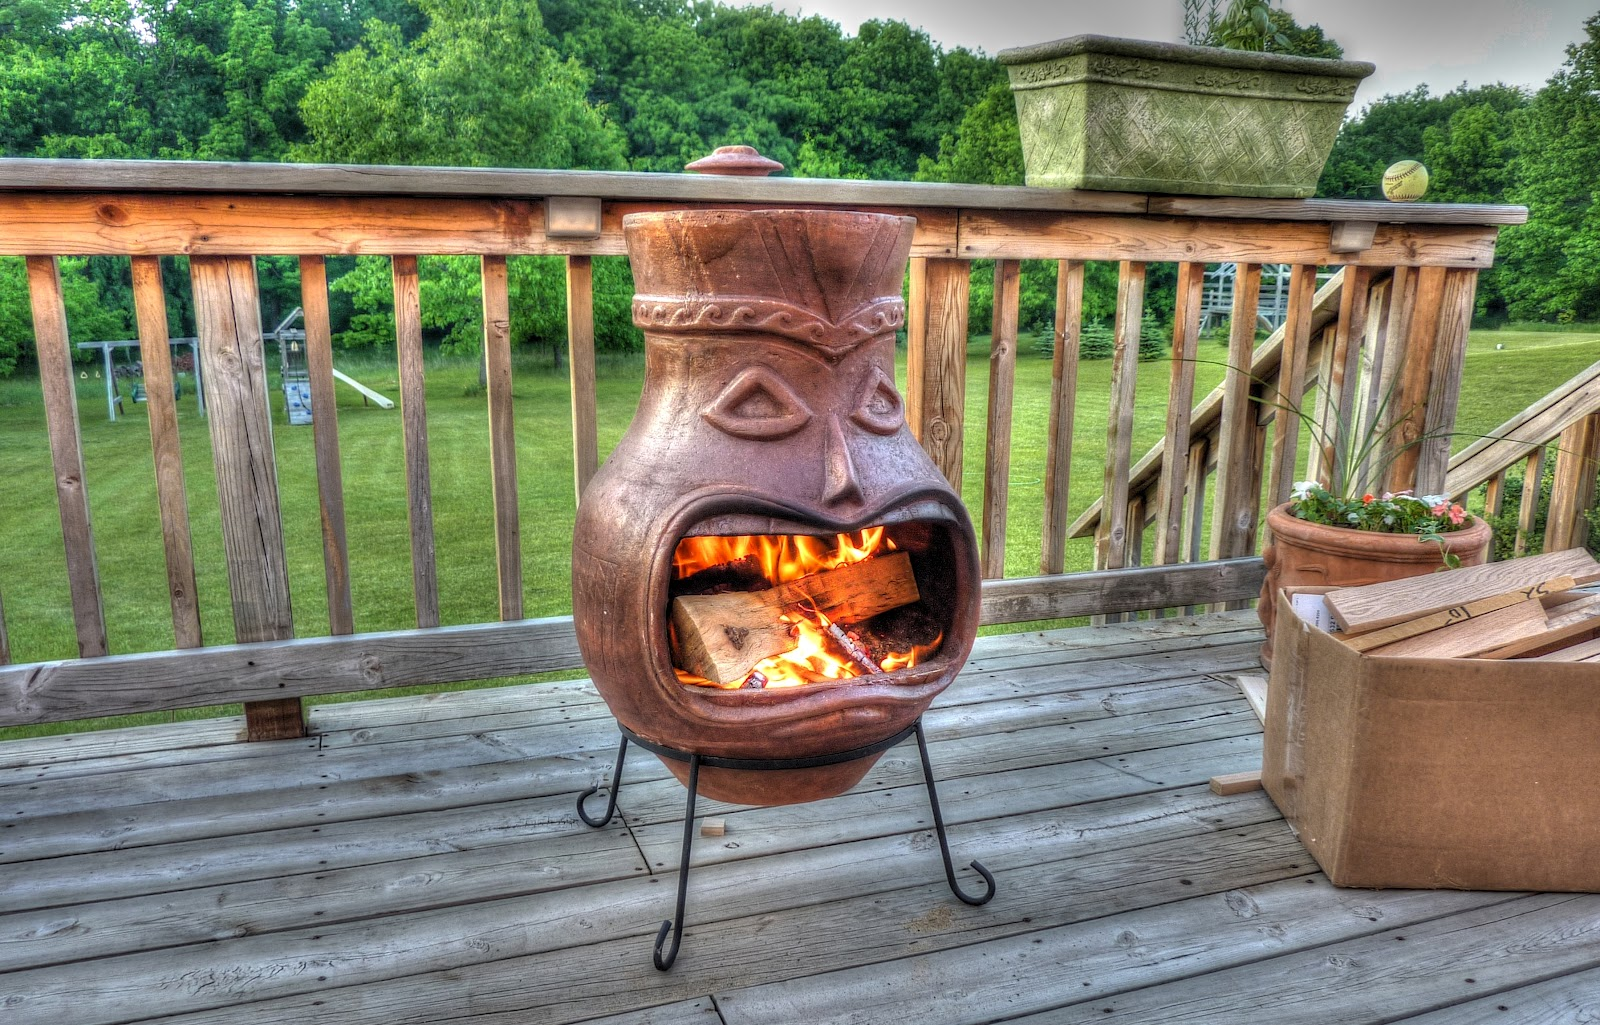 Awesome Brown Clay Chiminea Outdoor Fireplace With Head Design For Patio Furniture Ideas